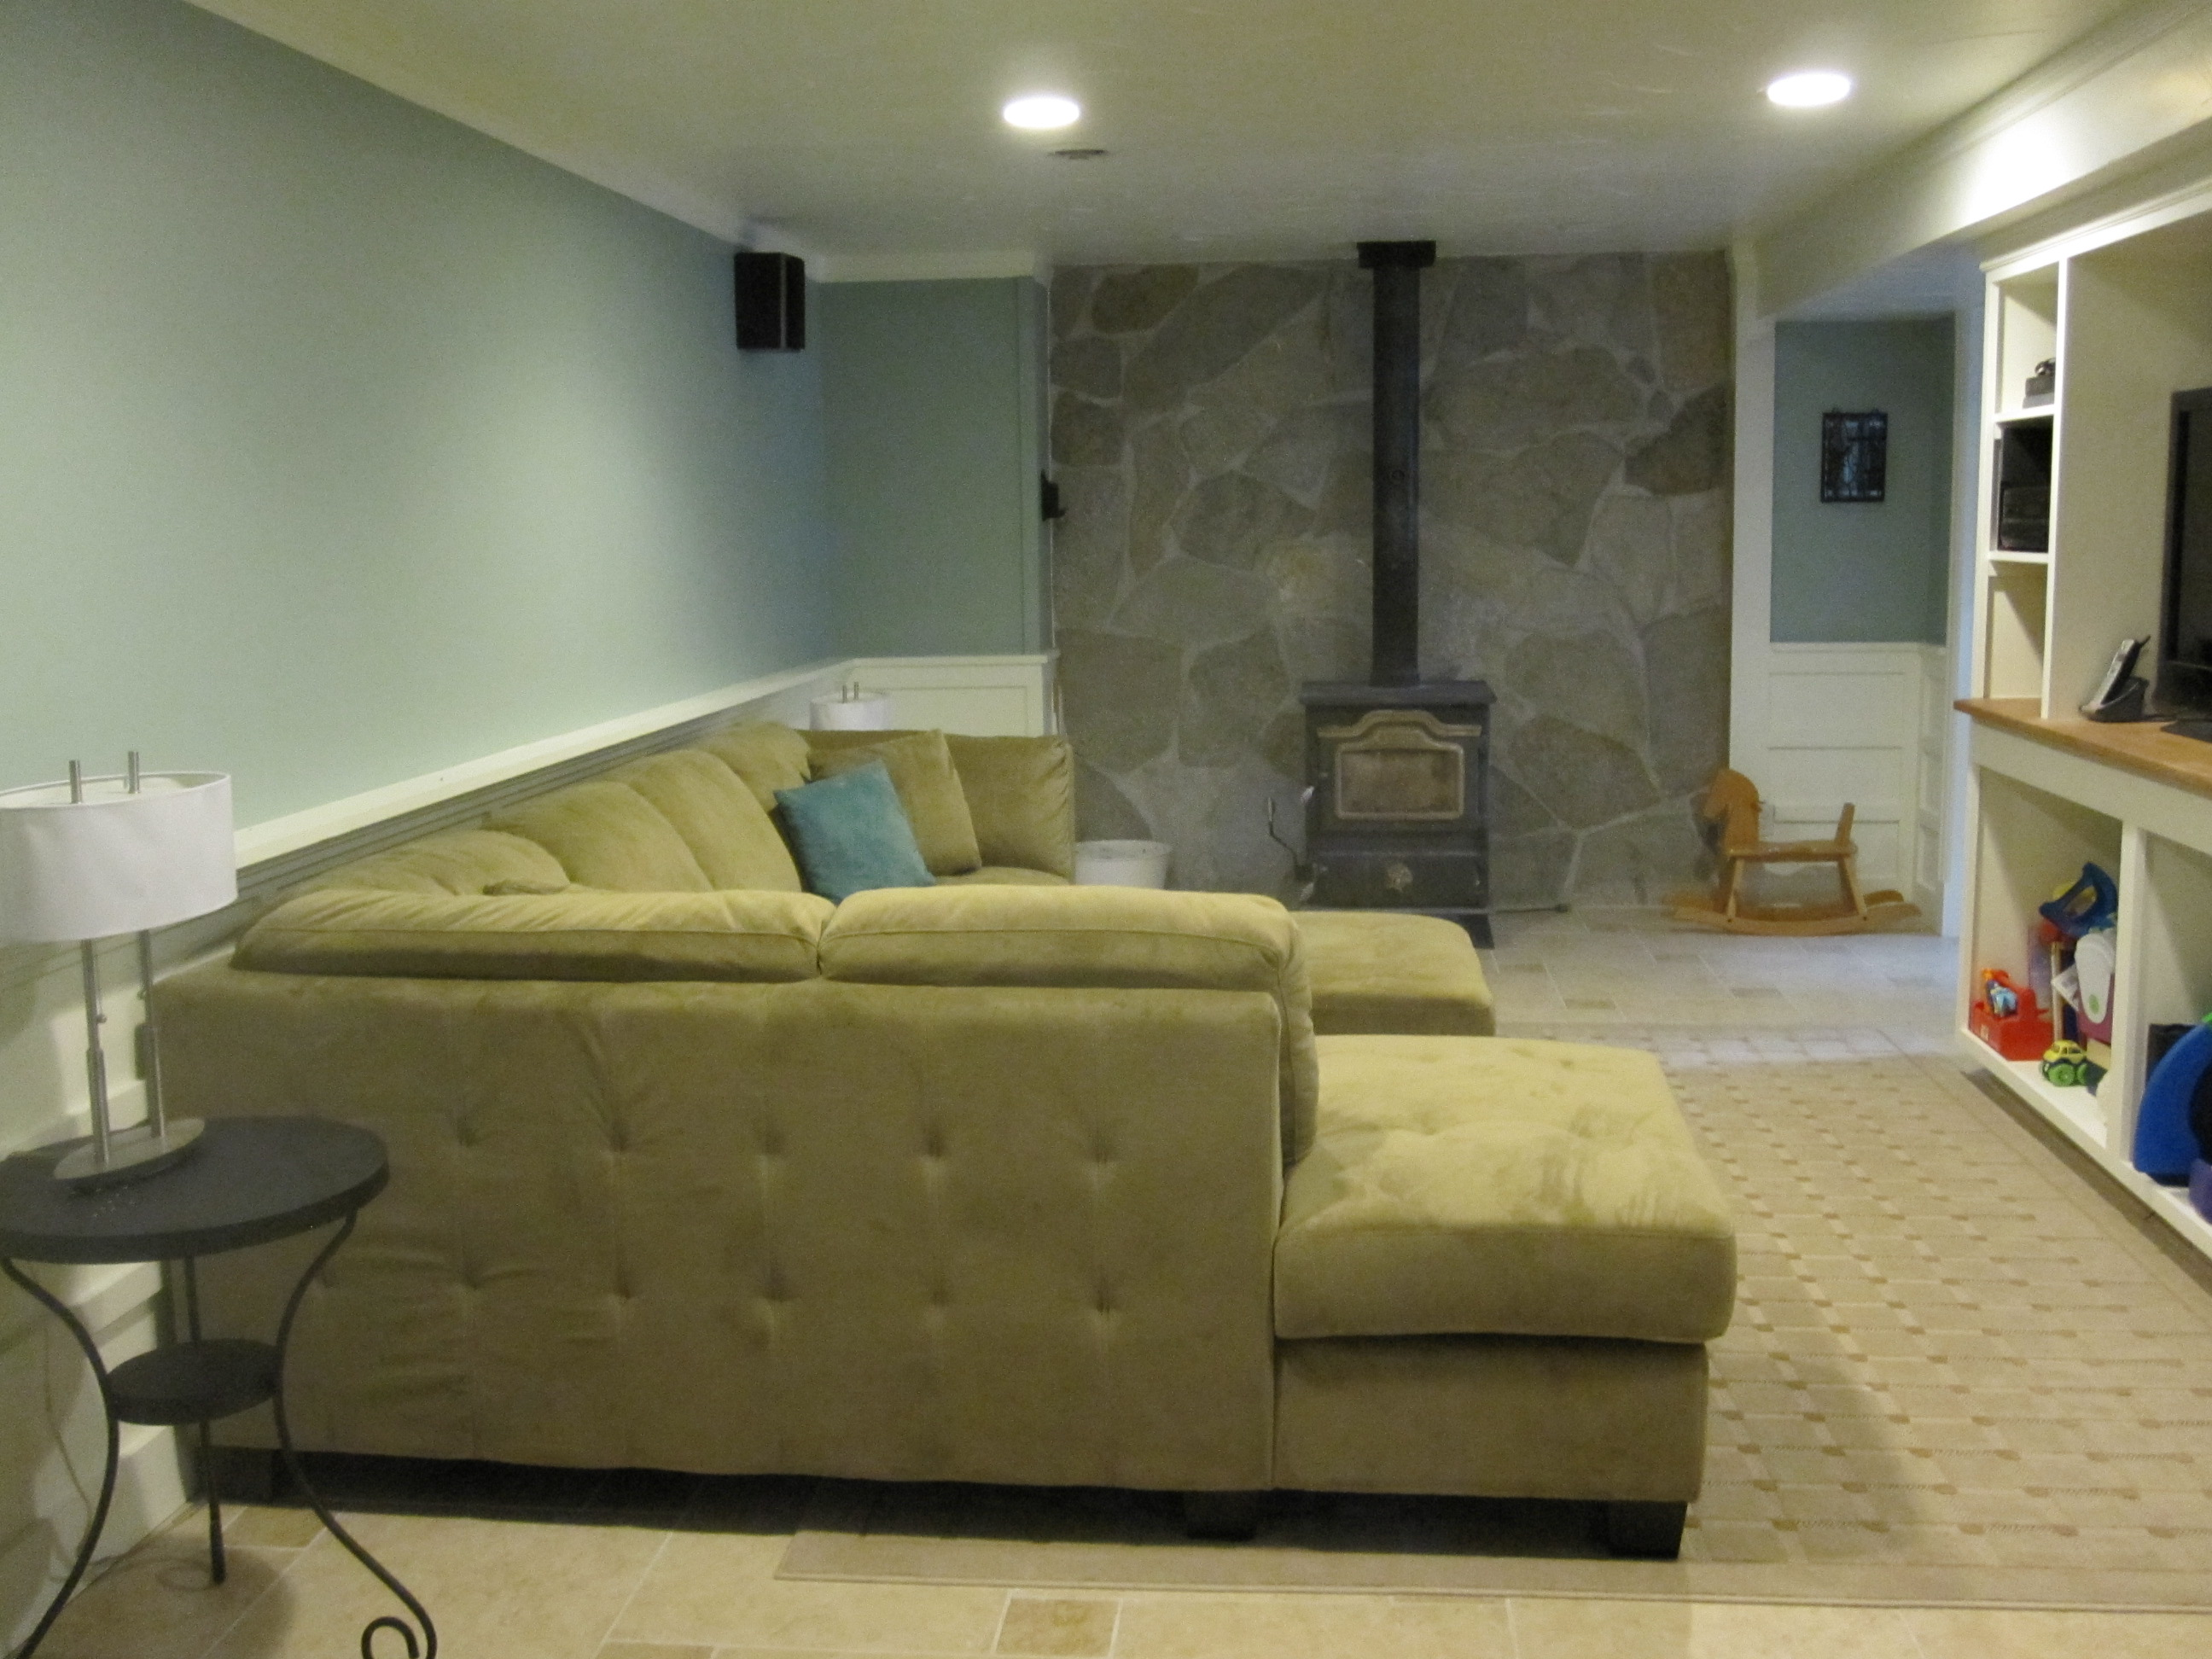 Basement Progress: Man Cave | Our Humble Abode